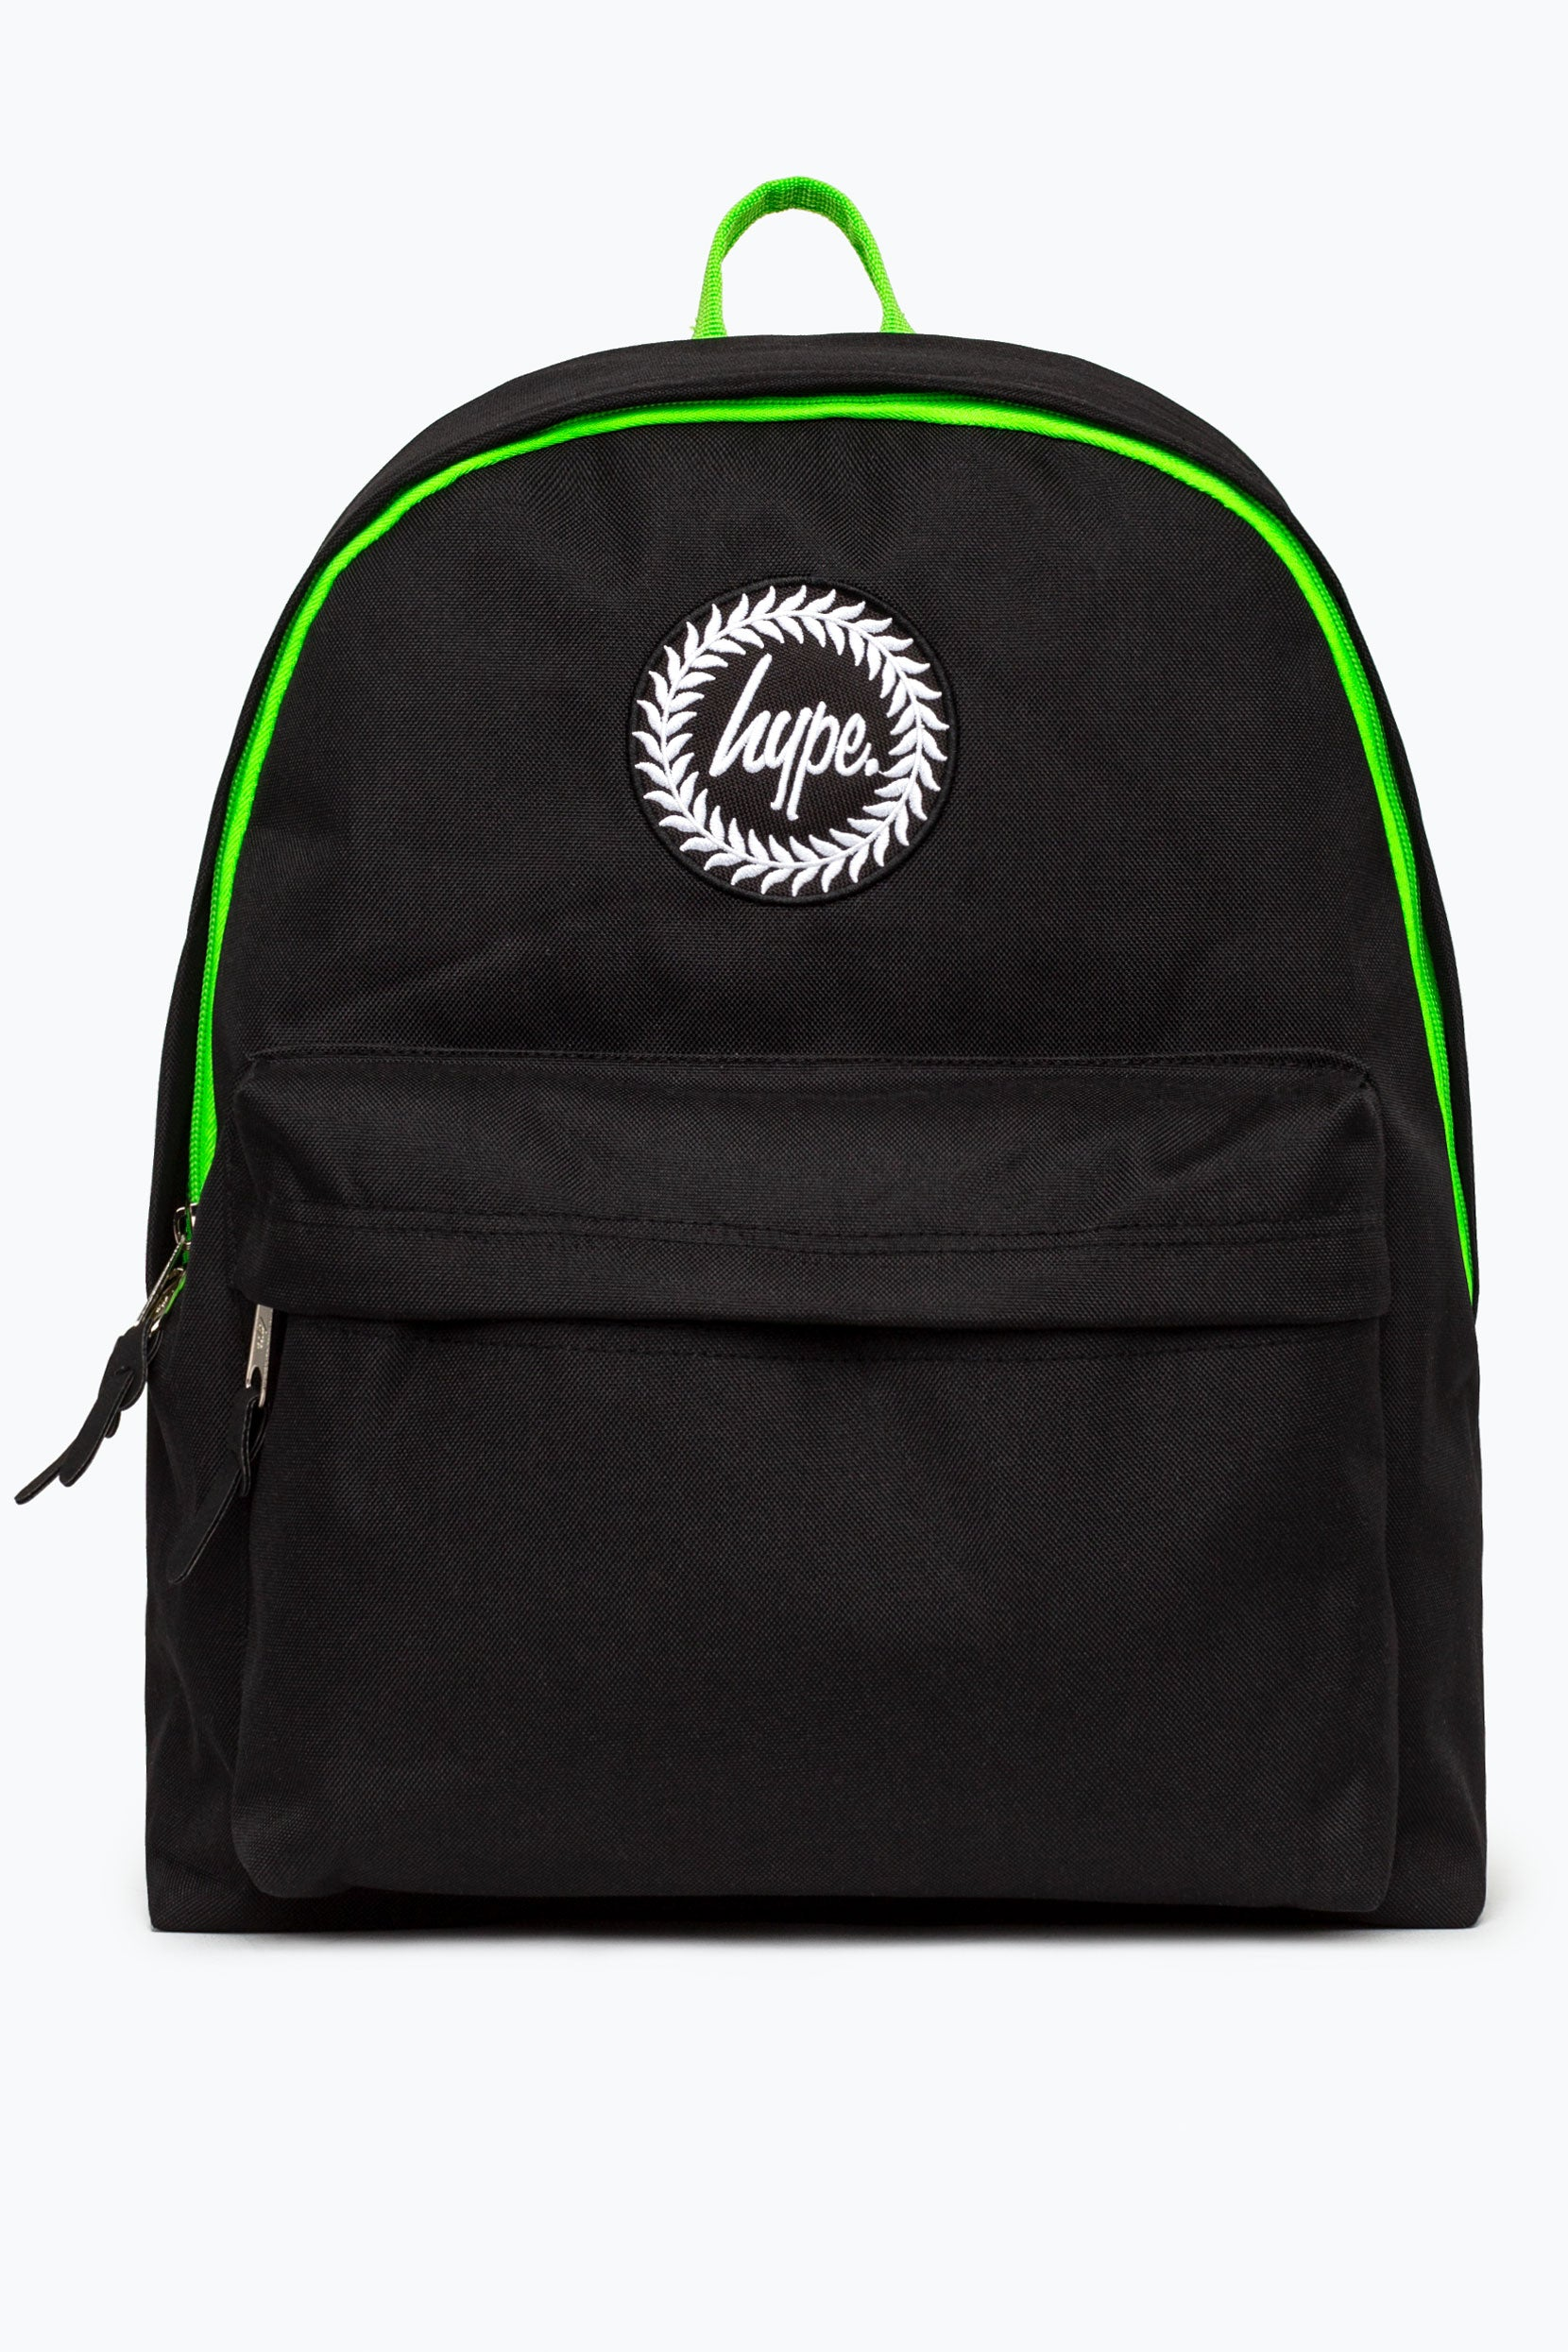 349e4acacab7 HYPE BLACK GREEN NEON FLASH BACKPACK – JustHype ltd